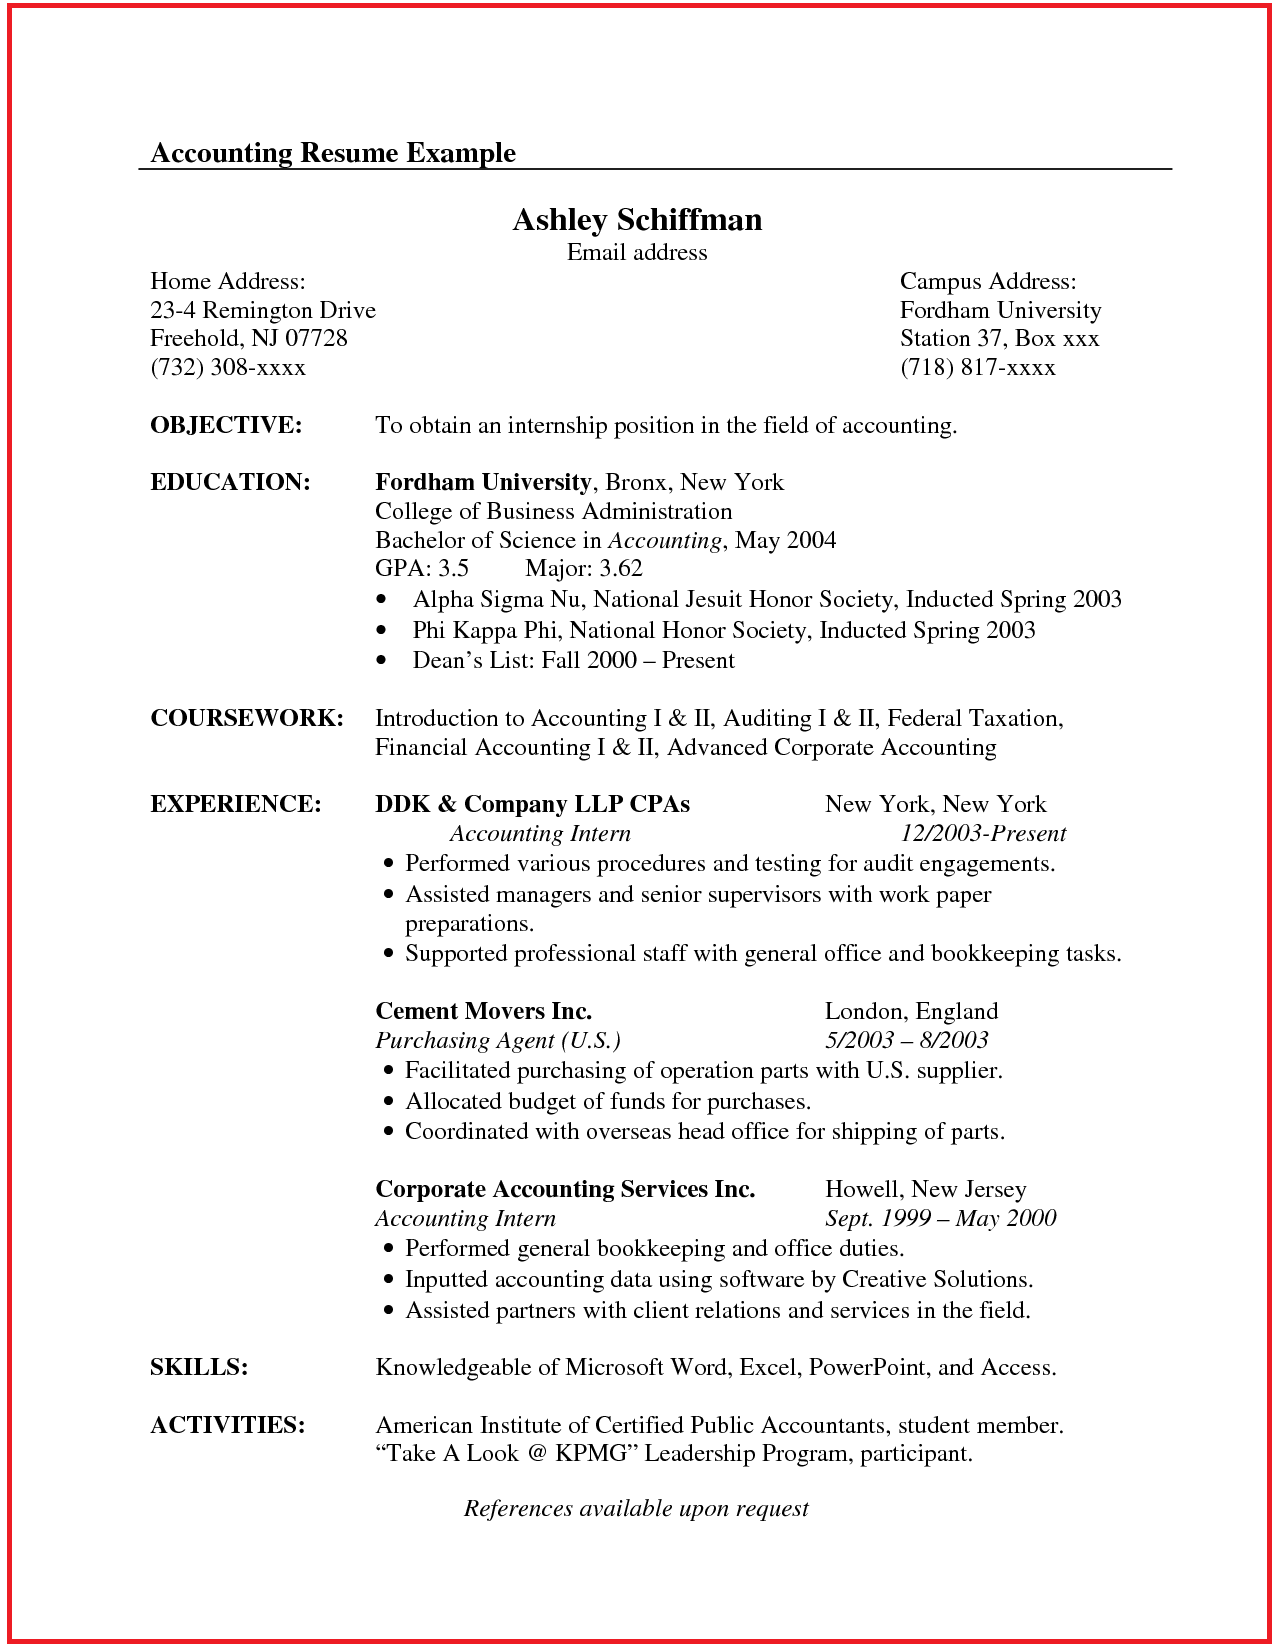 Accounting Resume Template Accountant Resume Sample Canada  Httpwwwjobresumewebsite